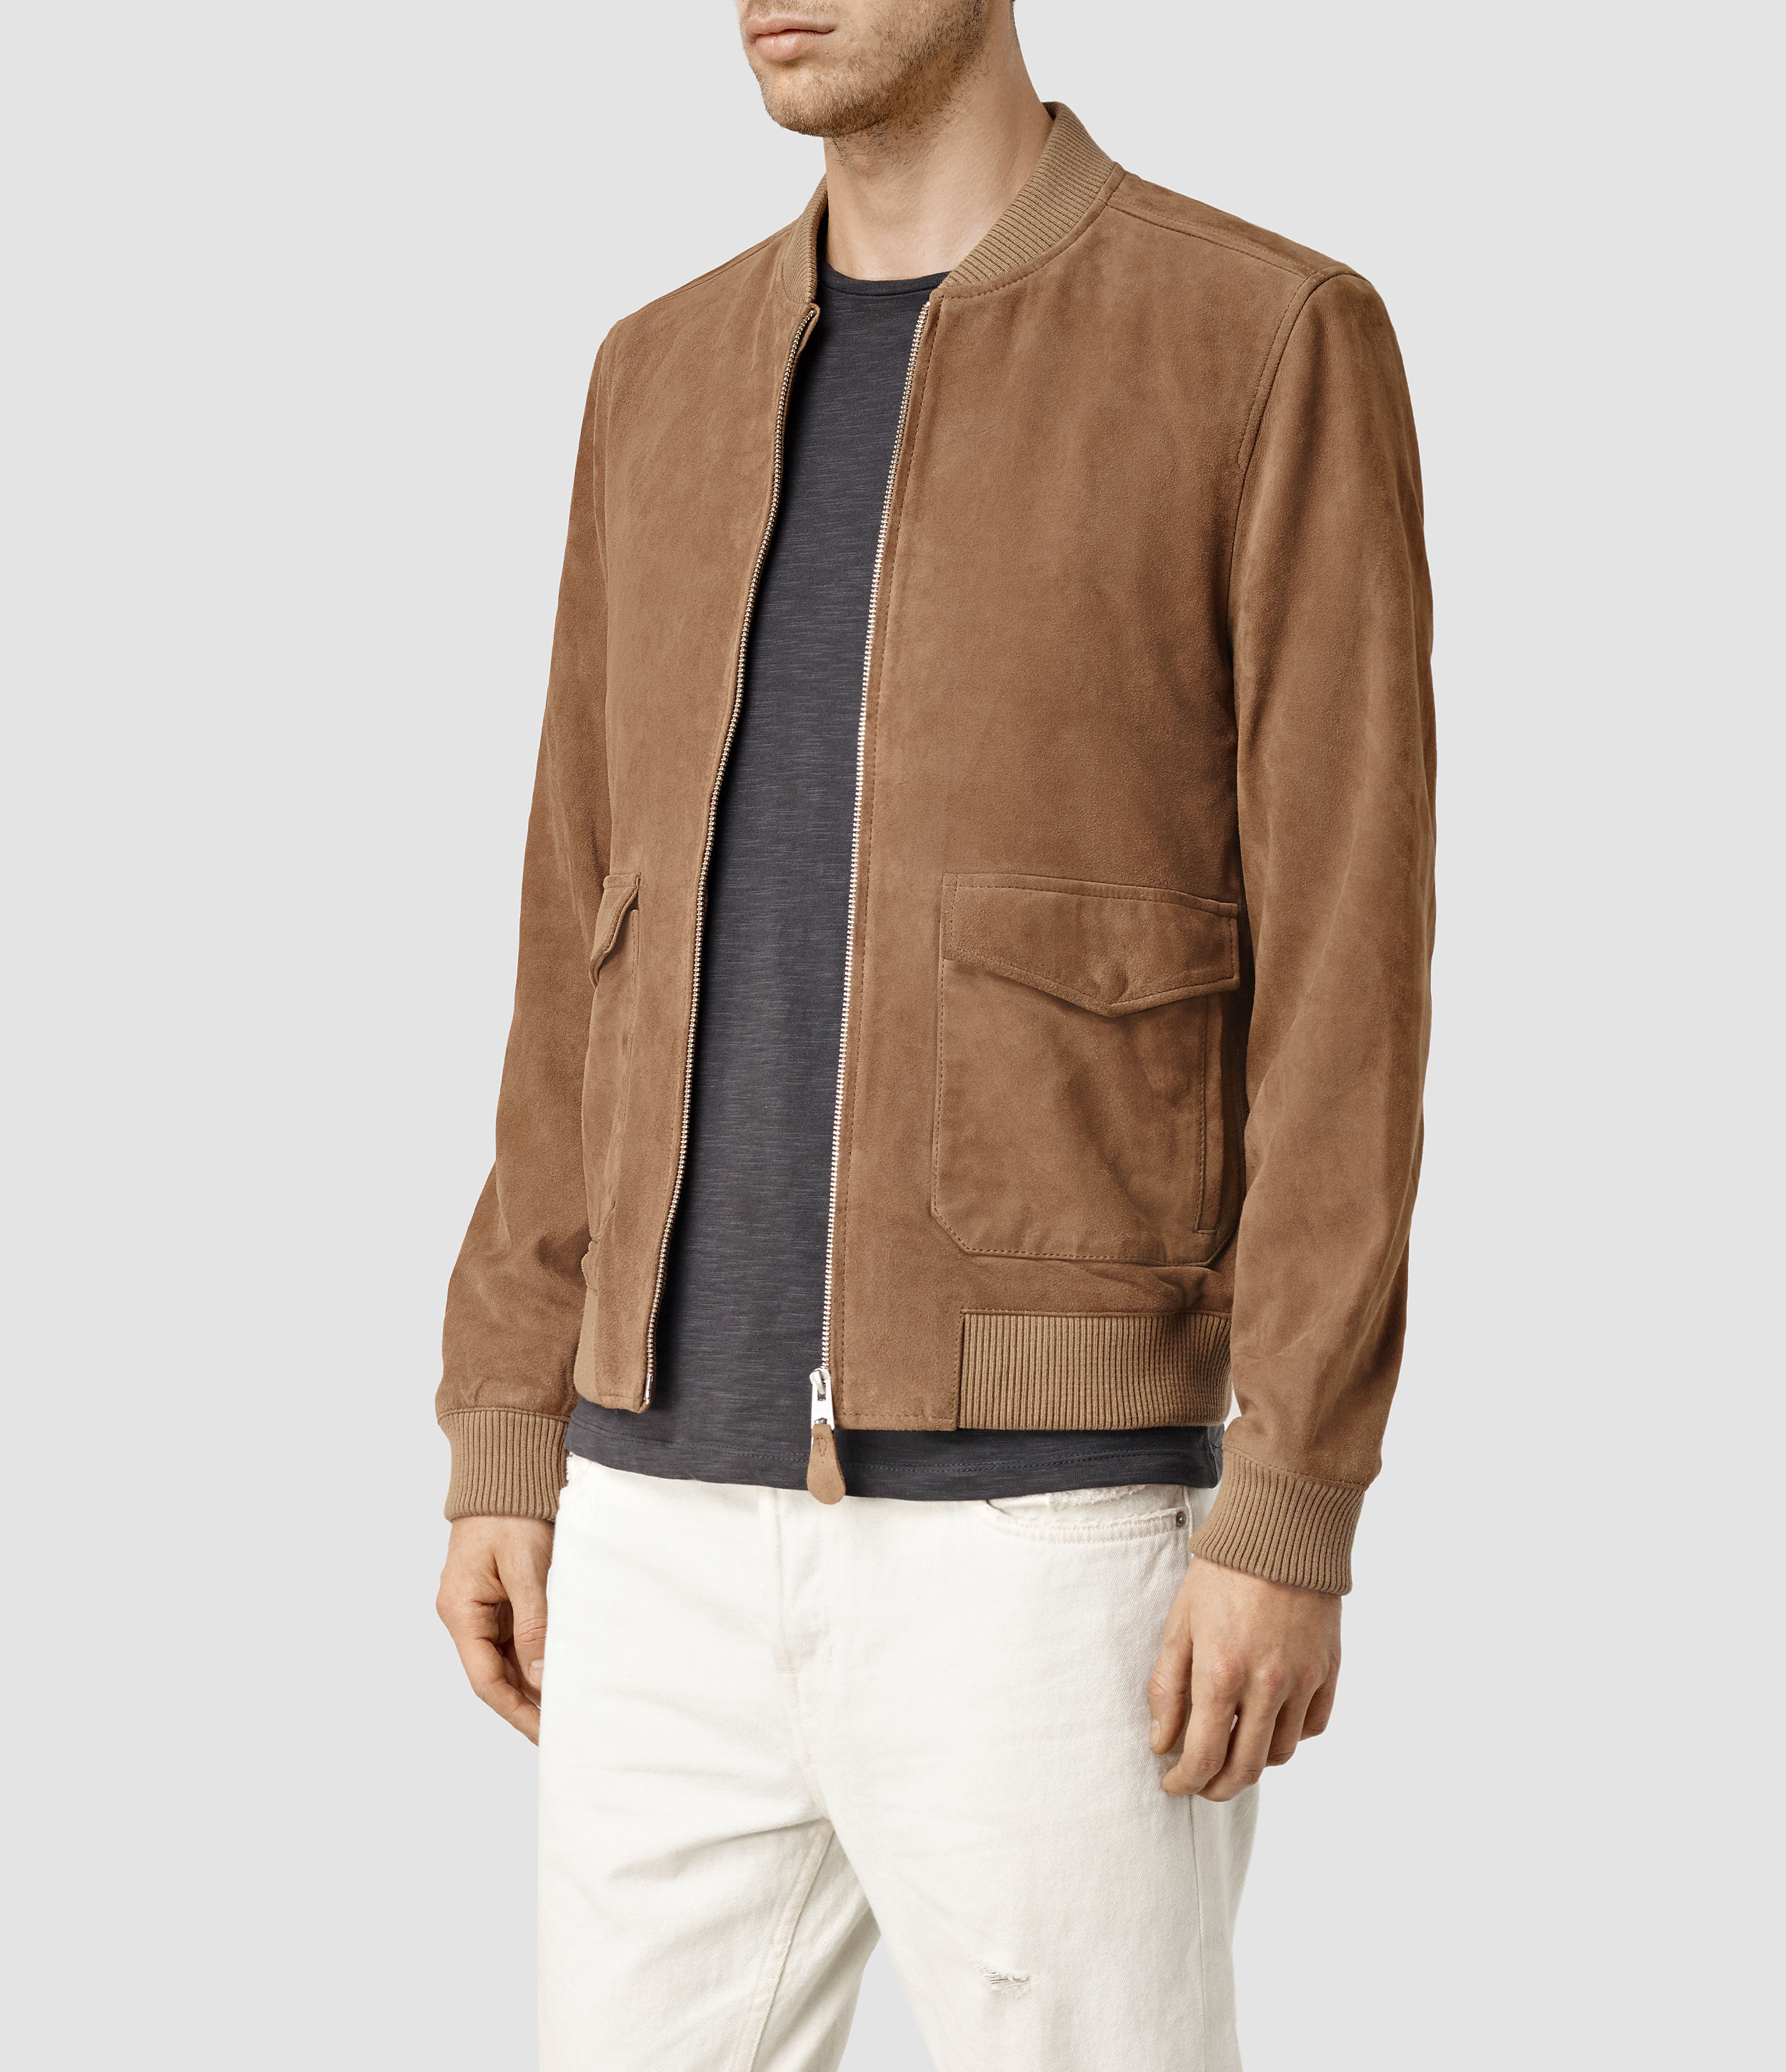 AllSaints Bloomington Leather Bomber Jacket Usa Usa in Sand Brown (Brown) for Men